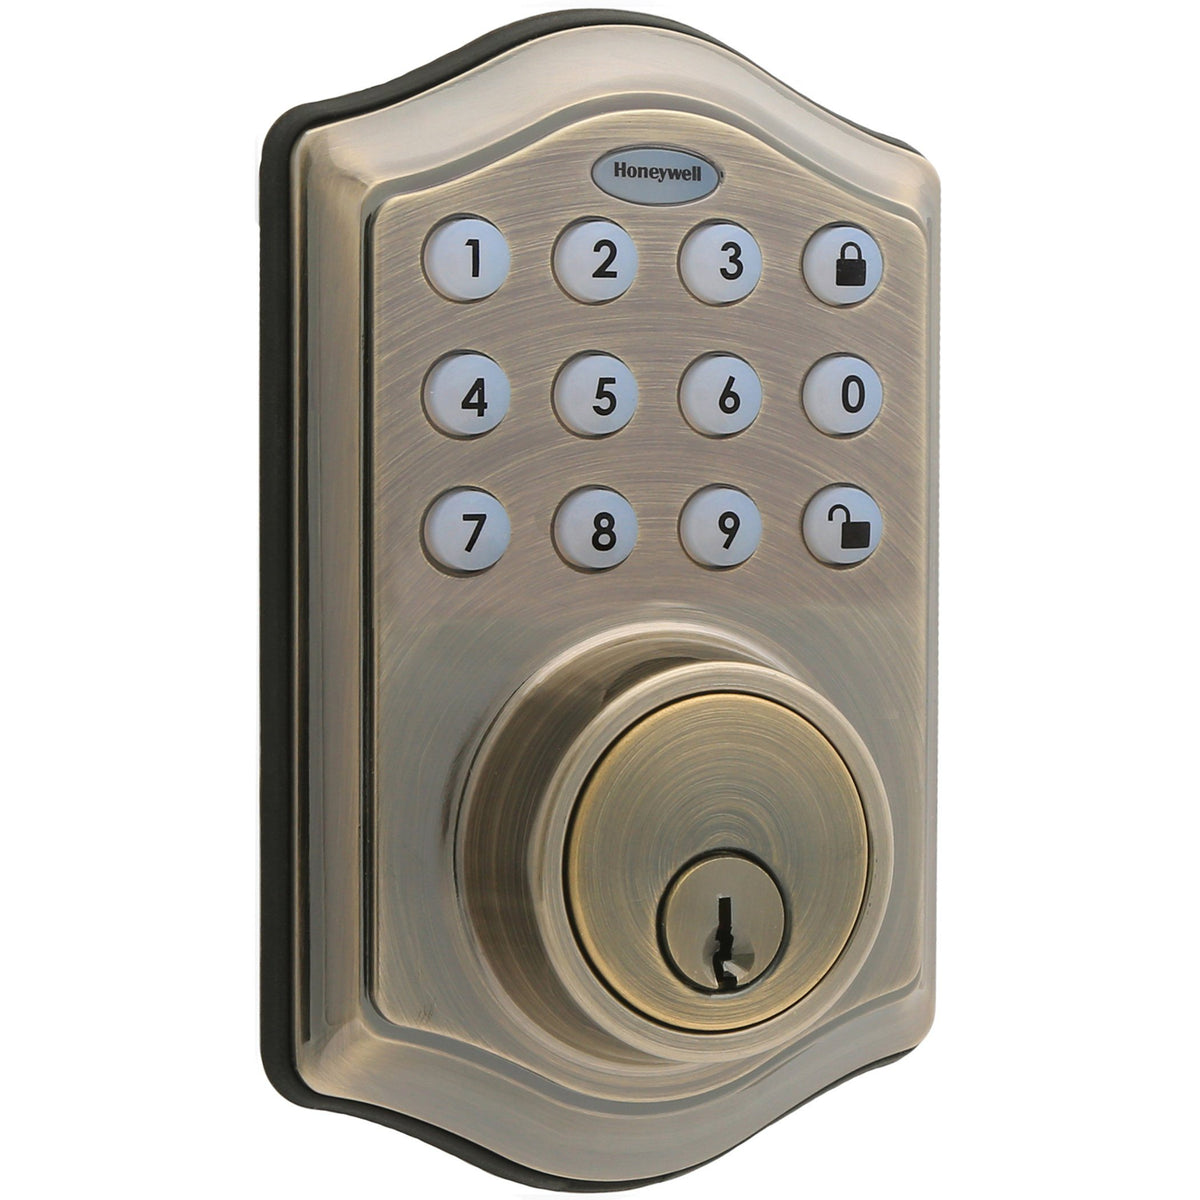 Honeywell 8712109 Electronic Deadbolt Door Lock with Keypad in Antique Brass